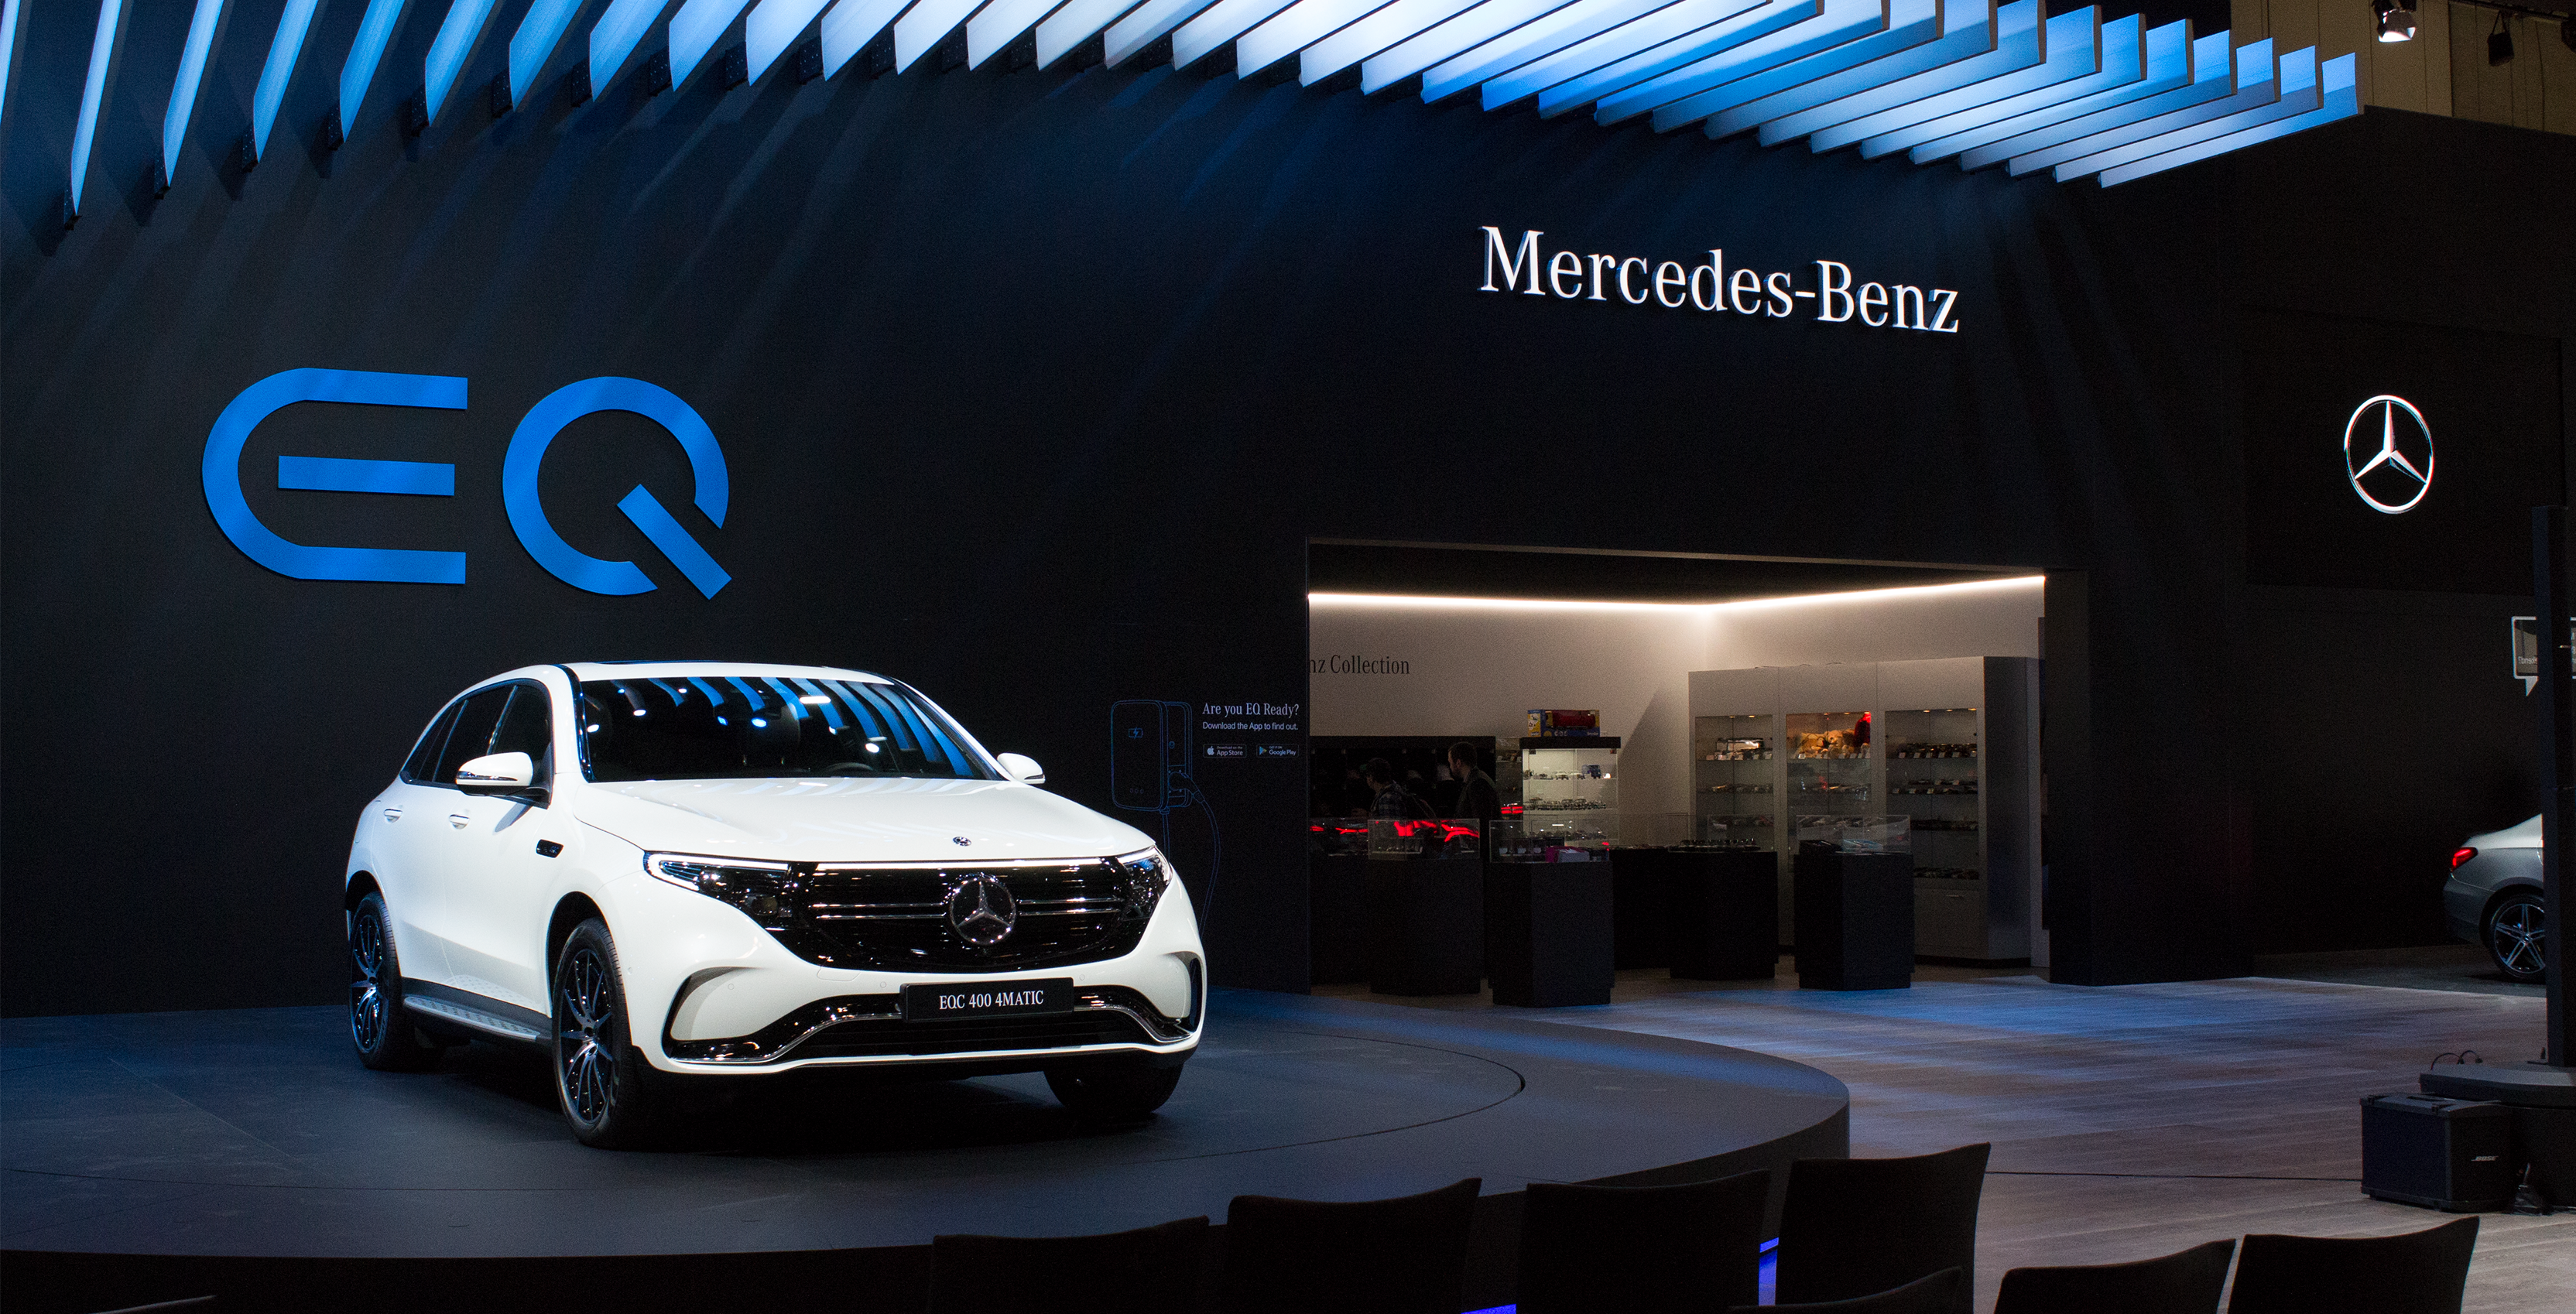 Mercedes-Benz reveals the EQC SUV, its first electric vehicle